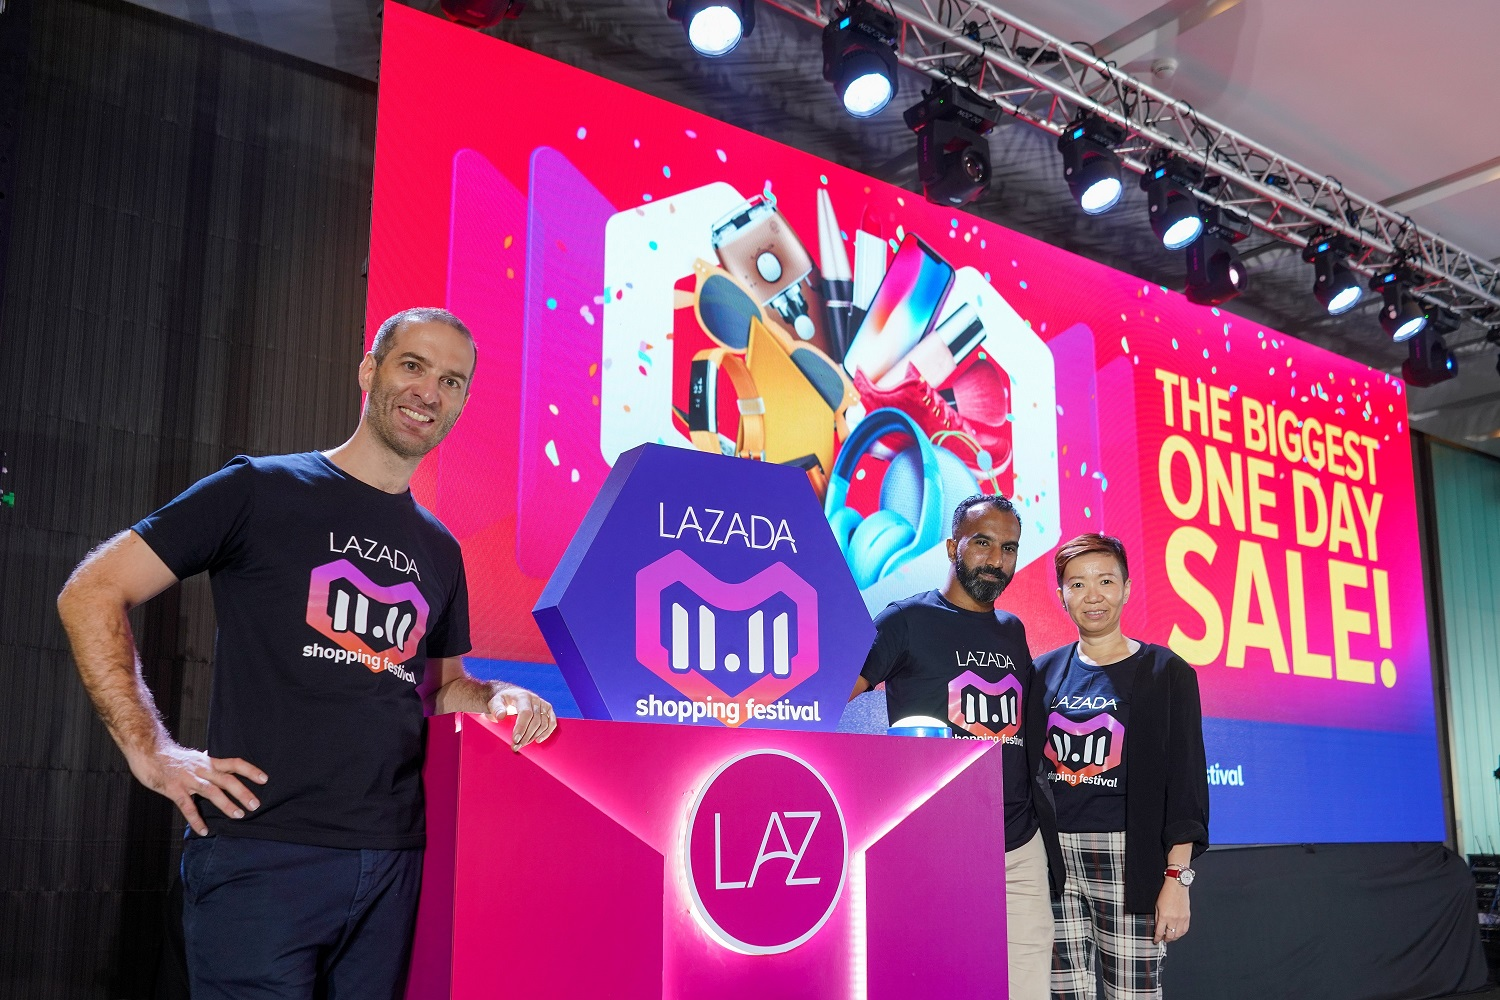 Lazada The Biggest One Day Sale